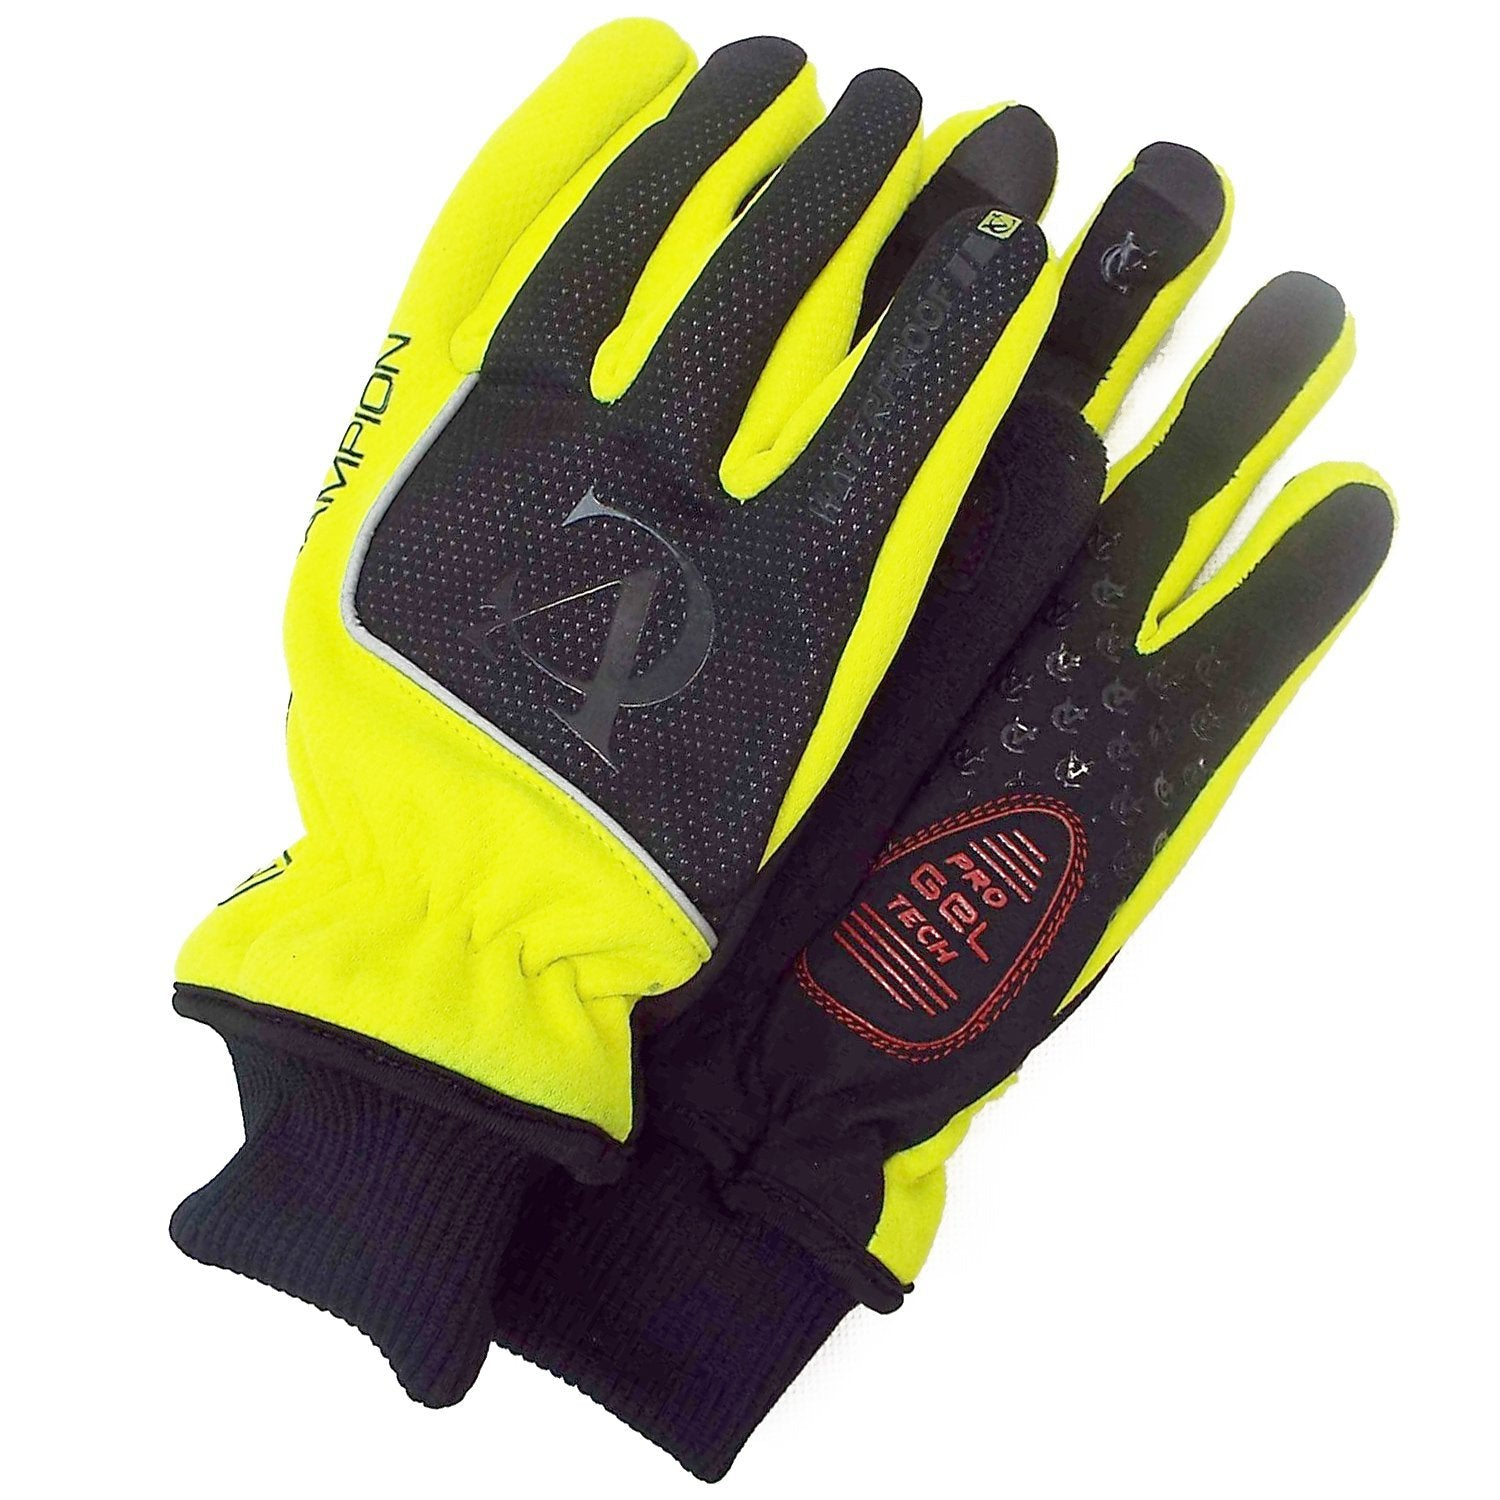 VeloChampion Deep Winter Waterproof Cycling Gloves - Velochampion